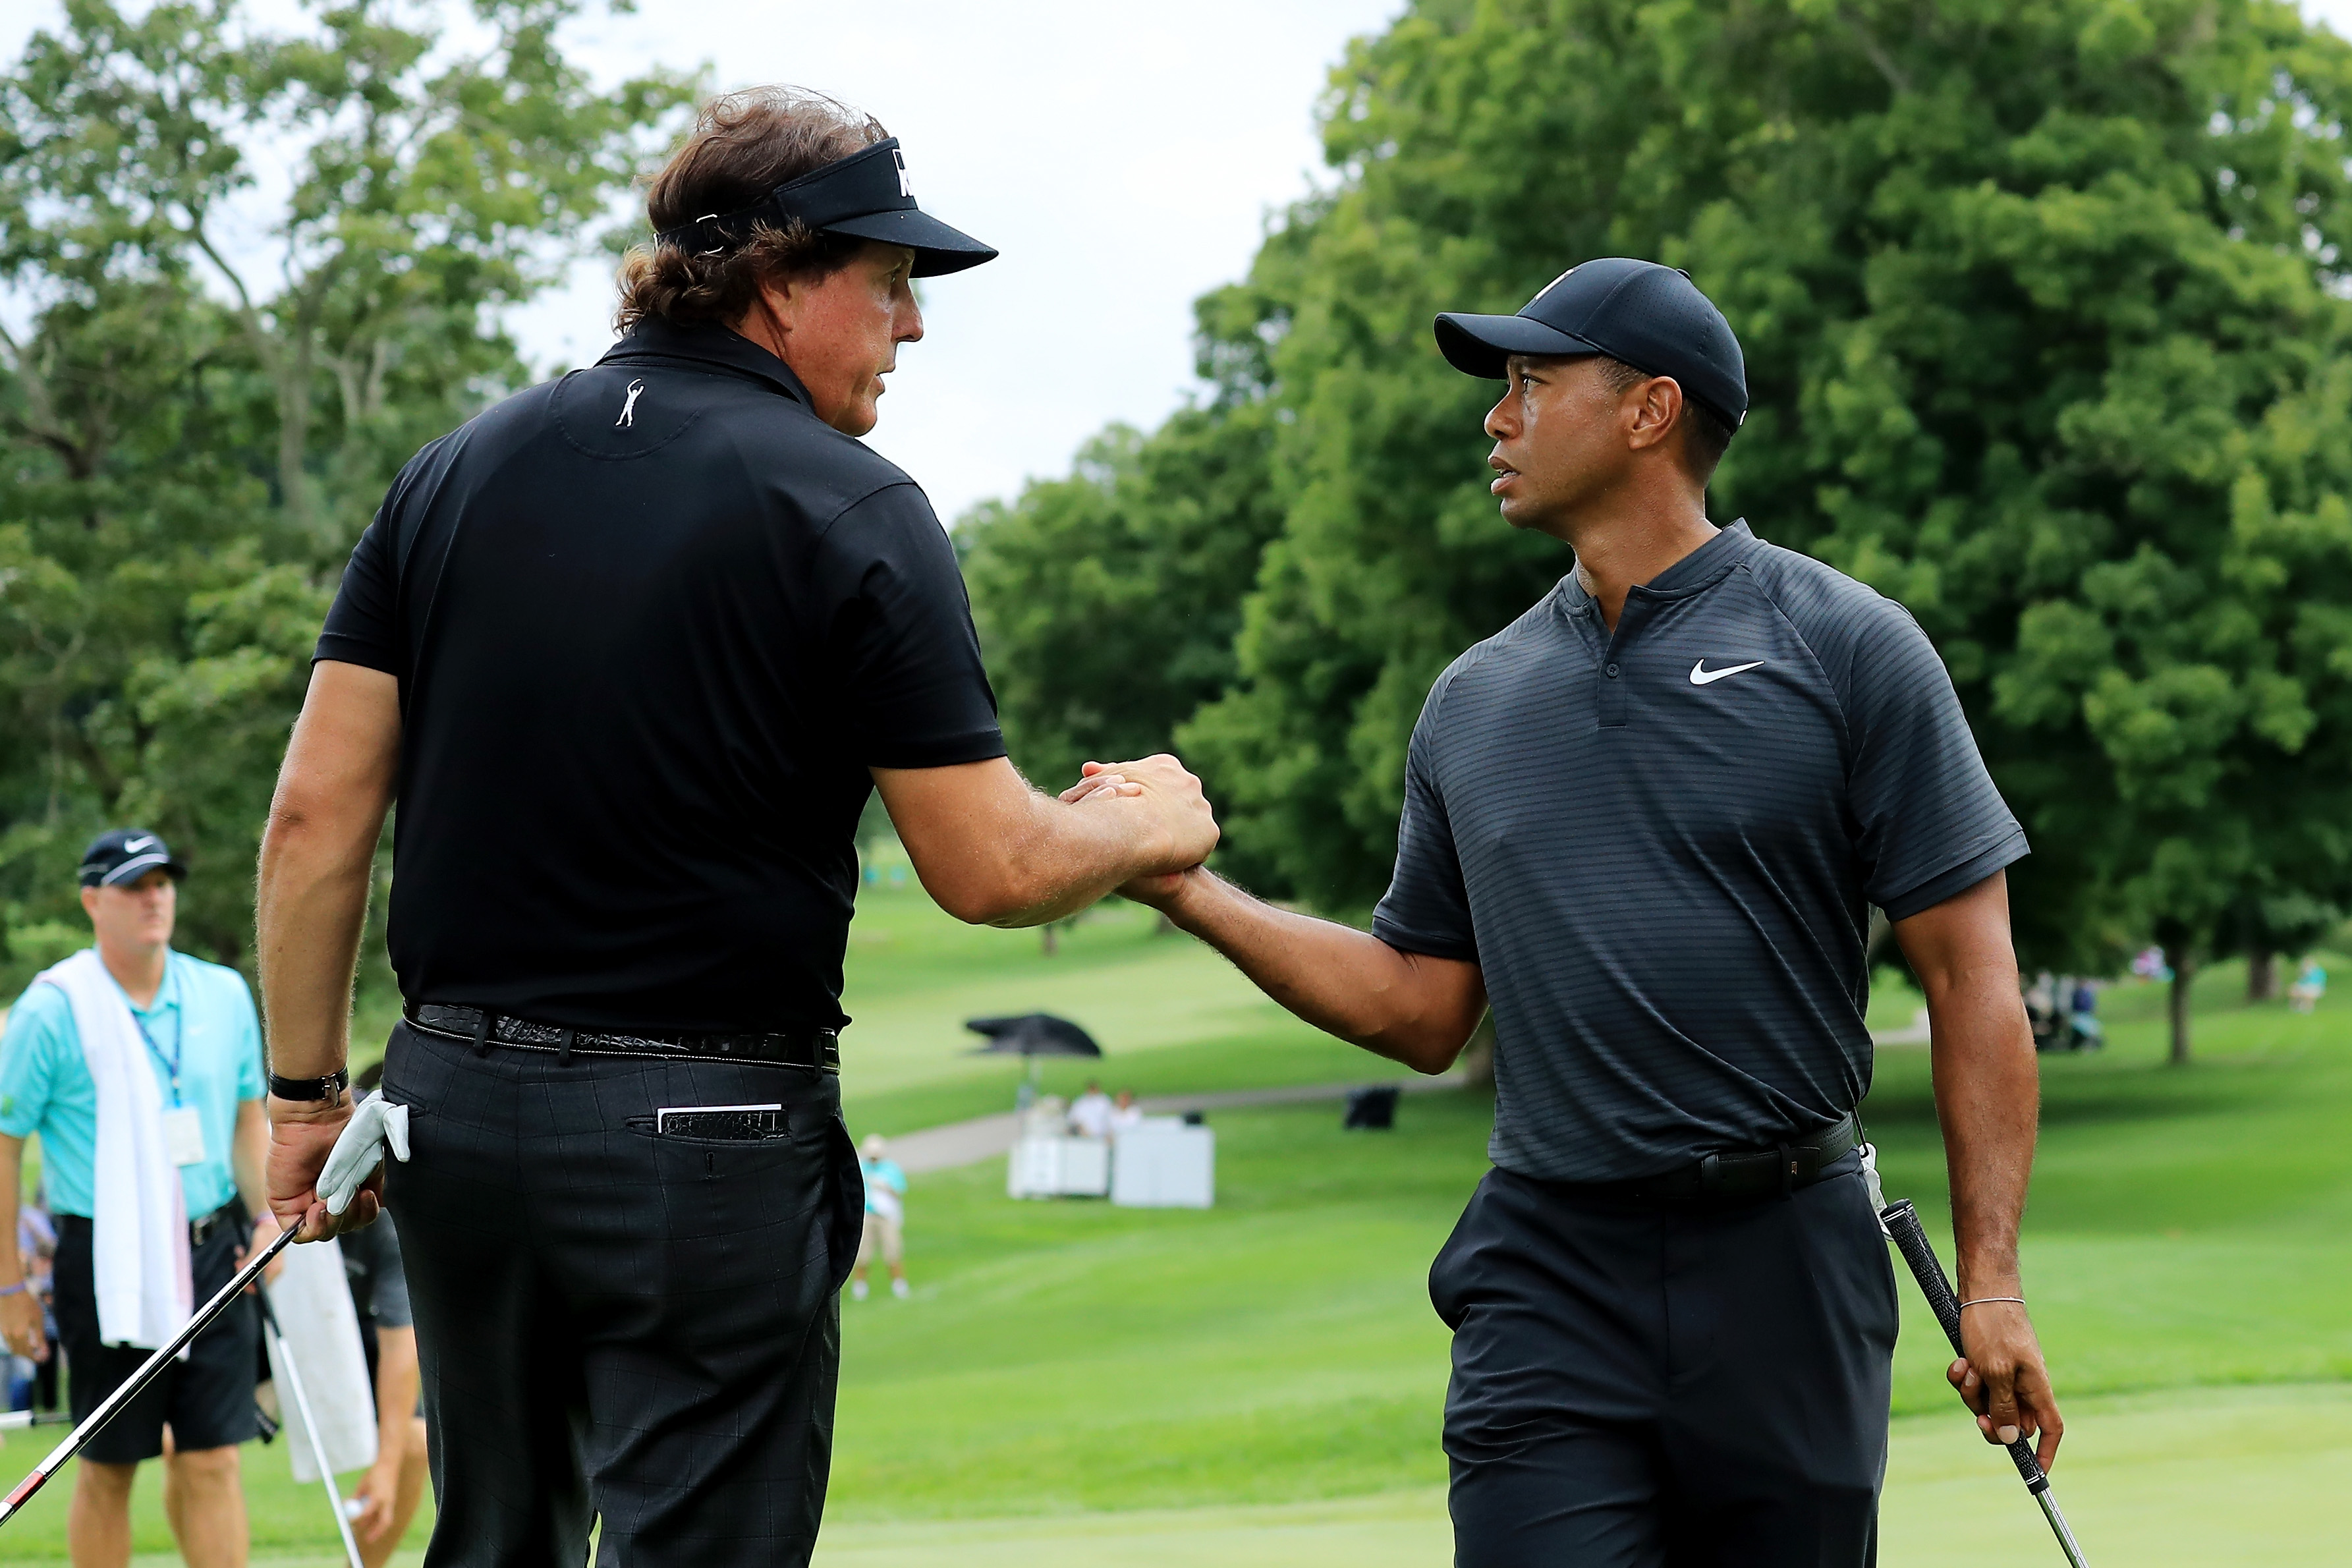 Tiger Woods, Phil Mickelson, and the hype machine for their Match came to HBO